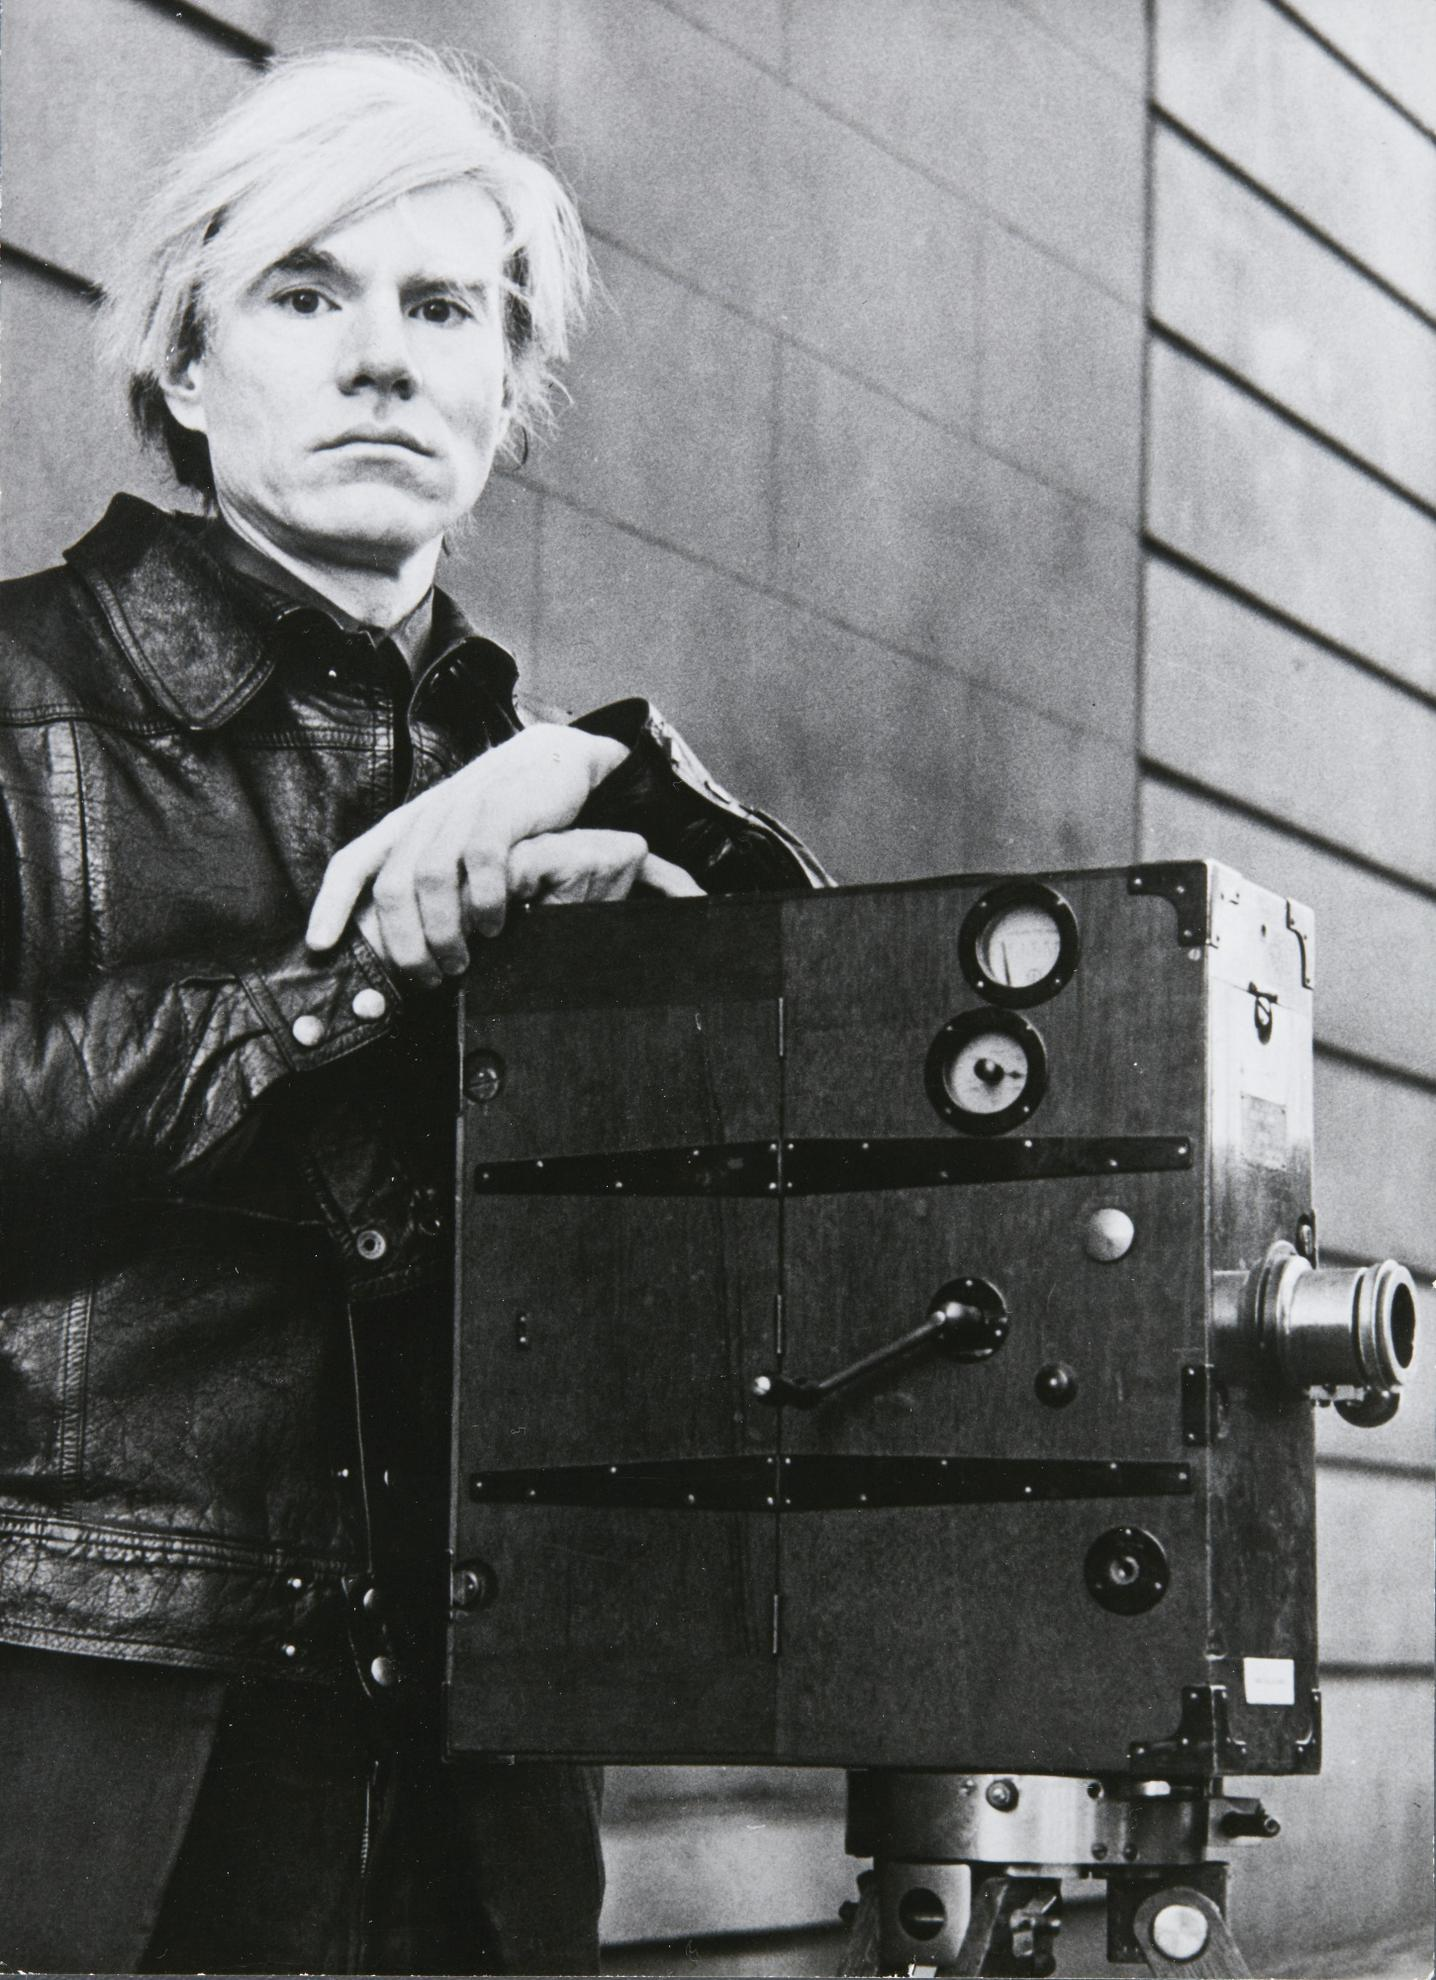 Andy Warhol-Self-Portrait (Andy Warhol With Film Camera Taken During The Heyday Of His Factory Films)-1977